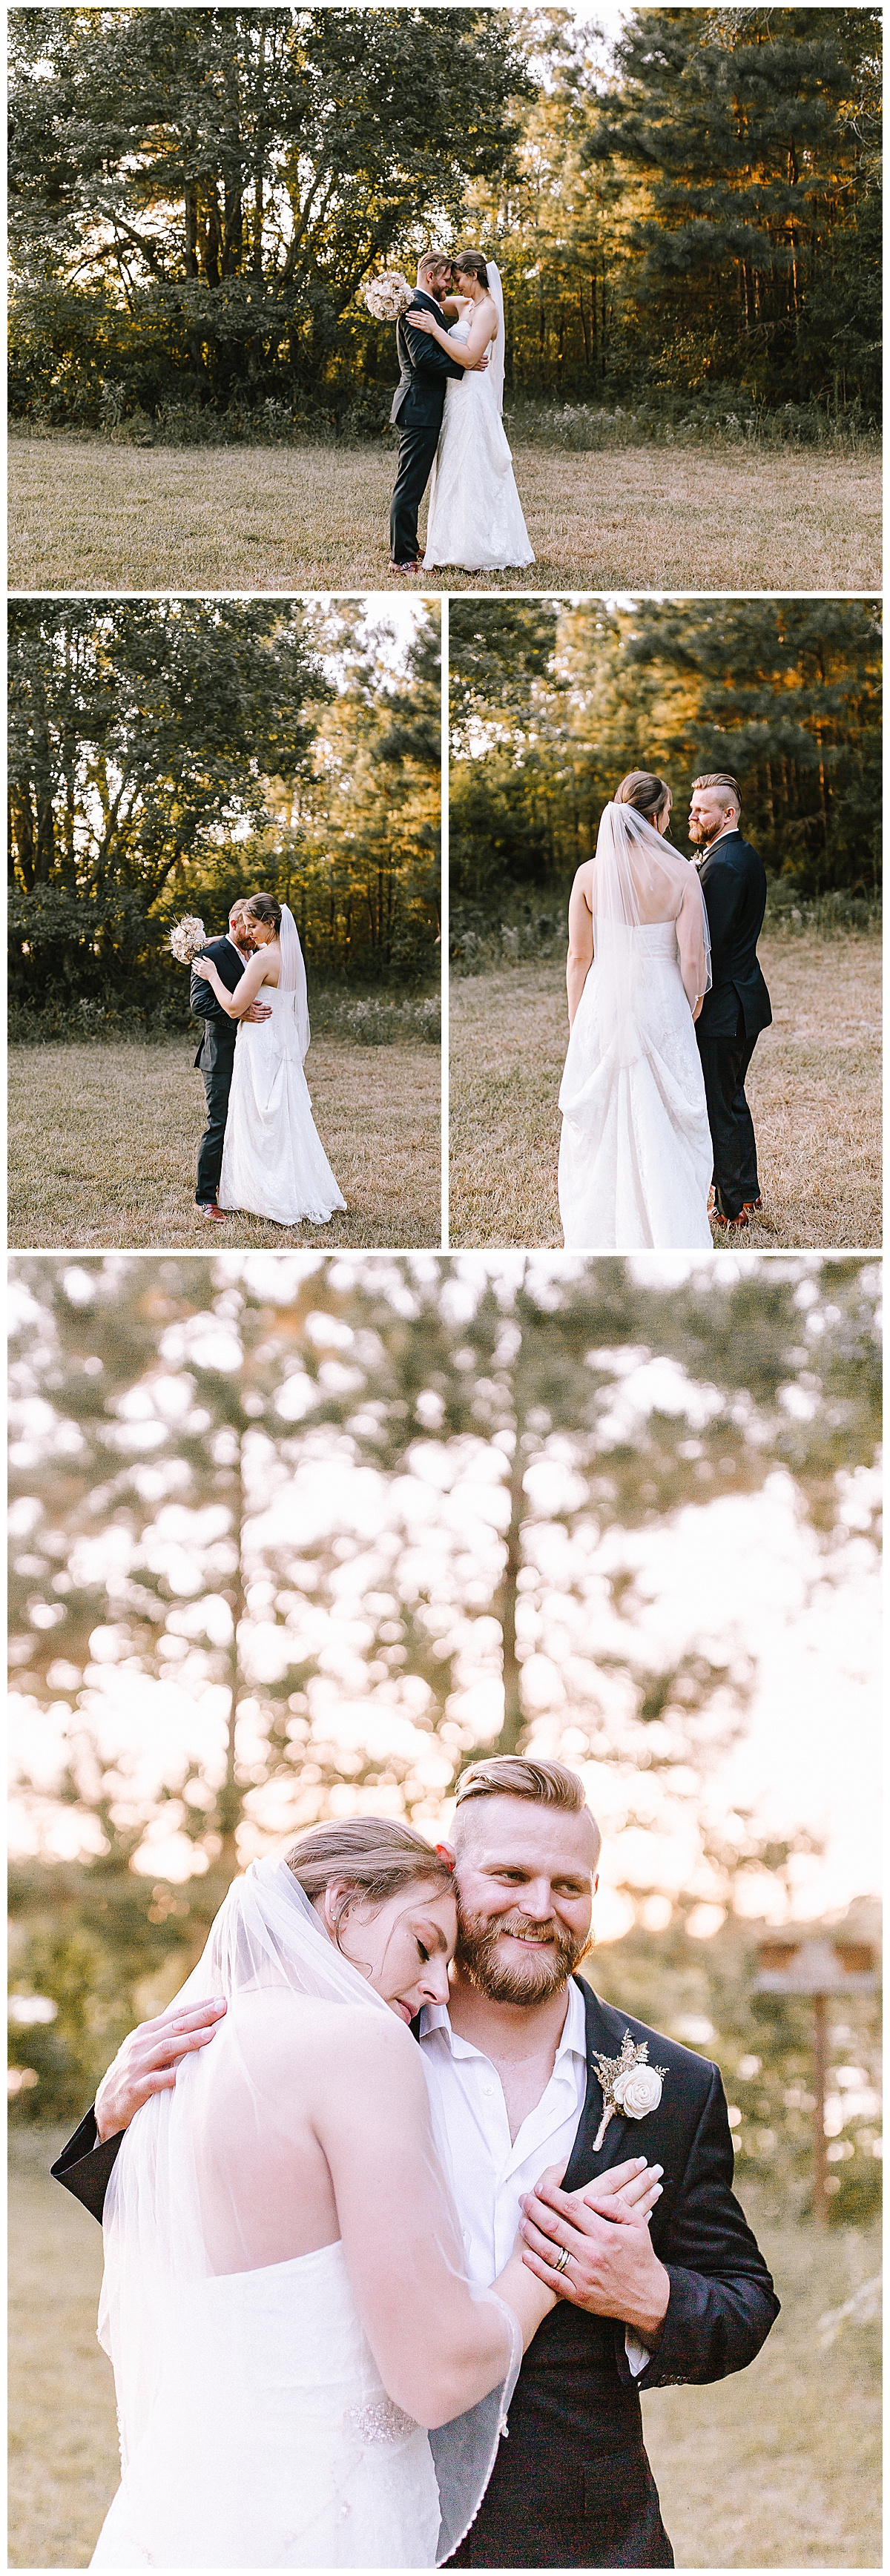 Texas-Magnolia-Bells-Rustic-Wedding-Carly-Barton-Photography_0038.jpg